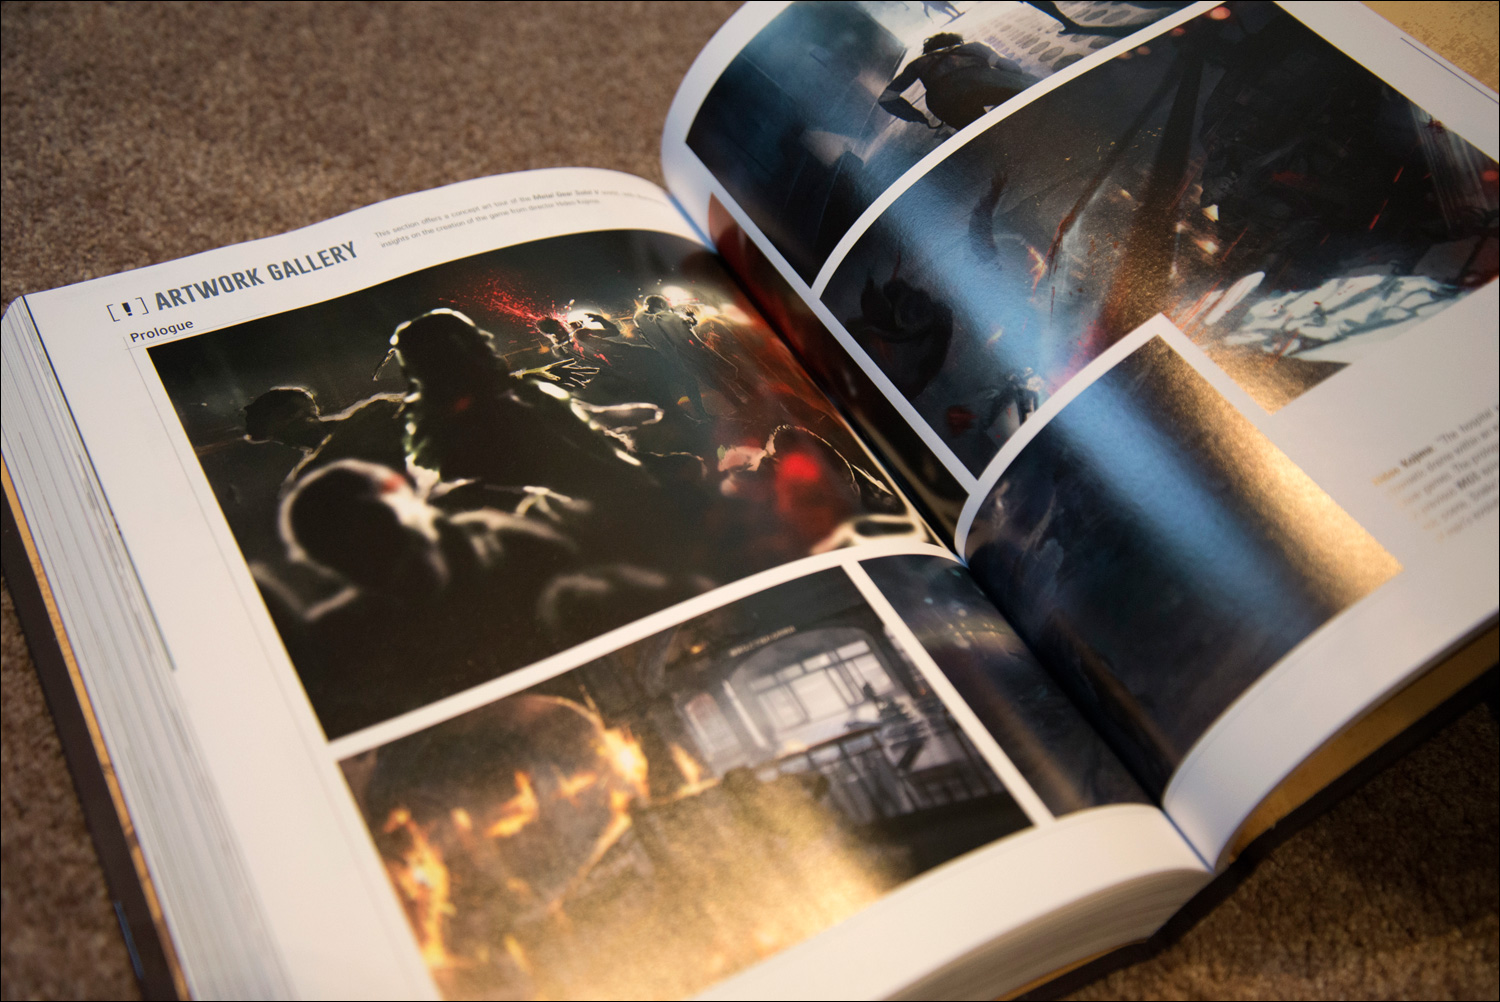 Metal-Gear-Solid-V-The-Phantom-Pain-Collector's-Edition-Guide-Artwork-Gallery